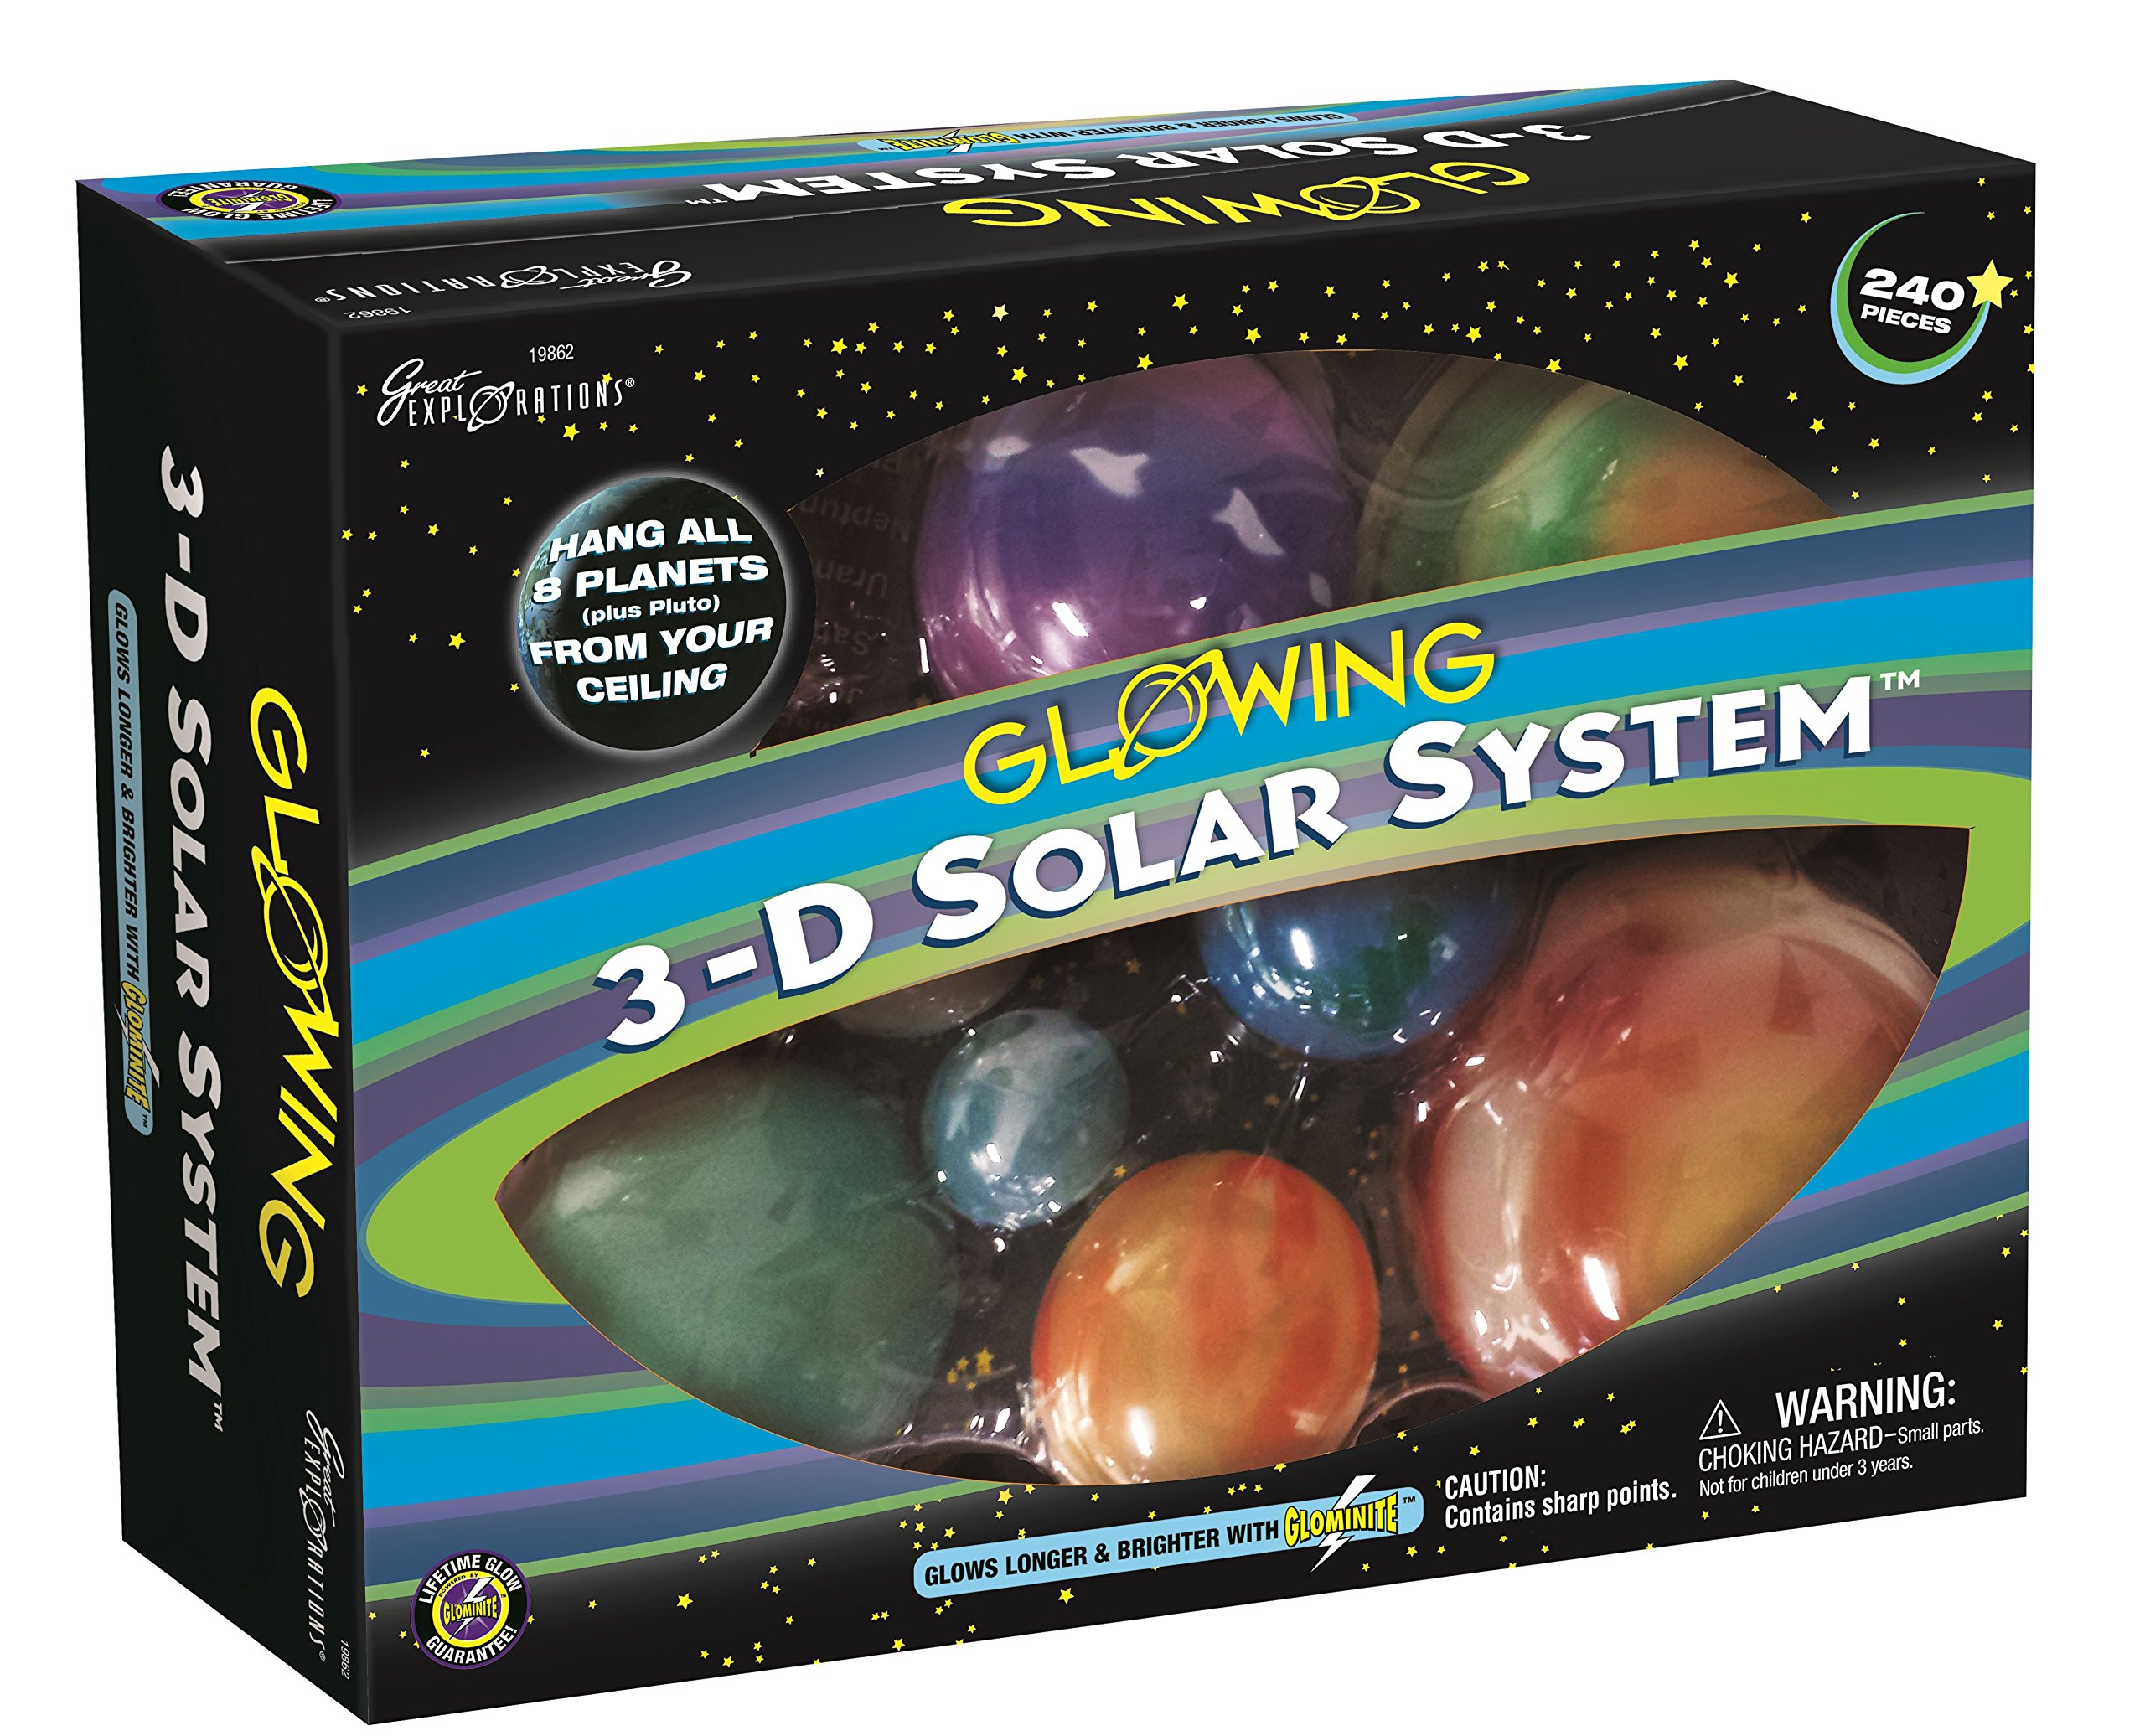 Buy Glowing 3D Solar System Now!